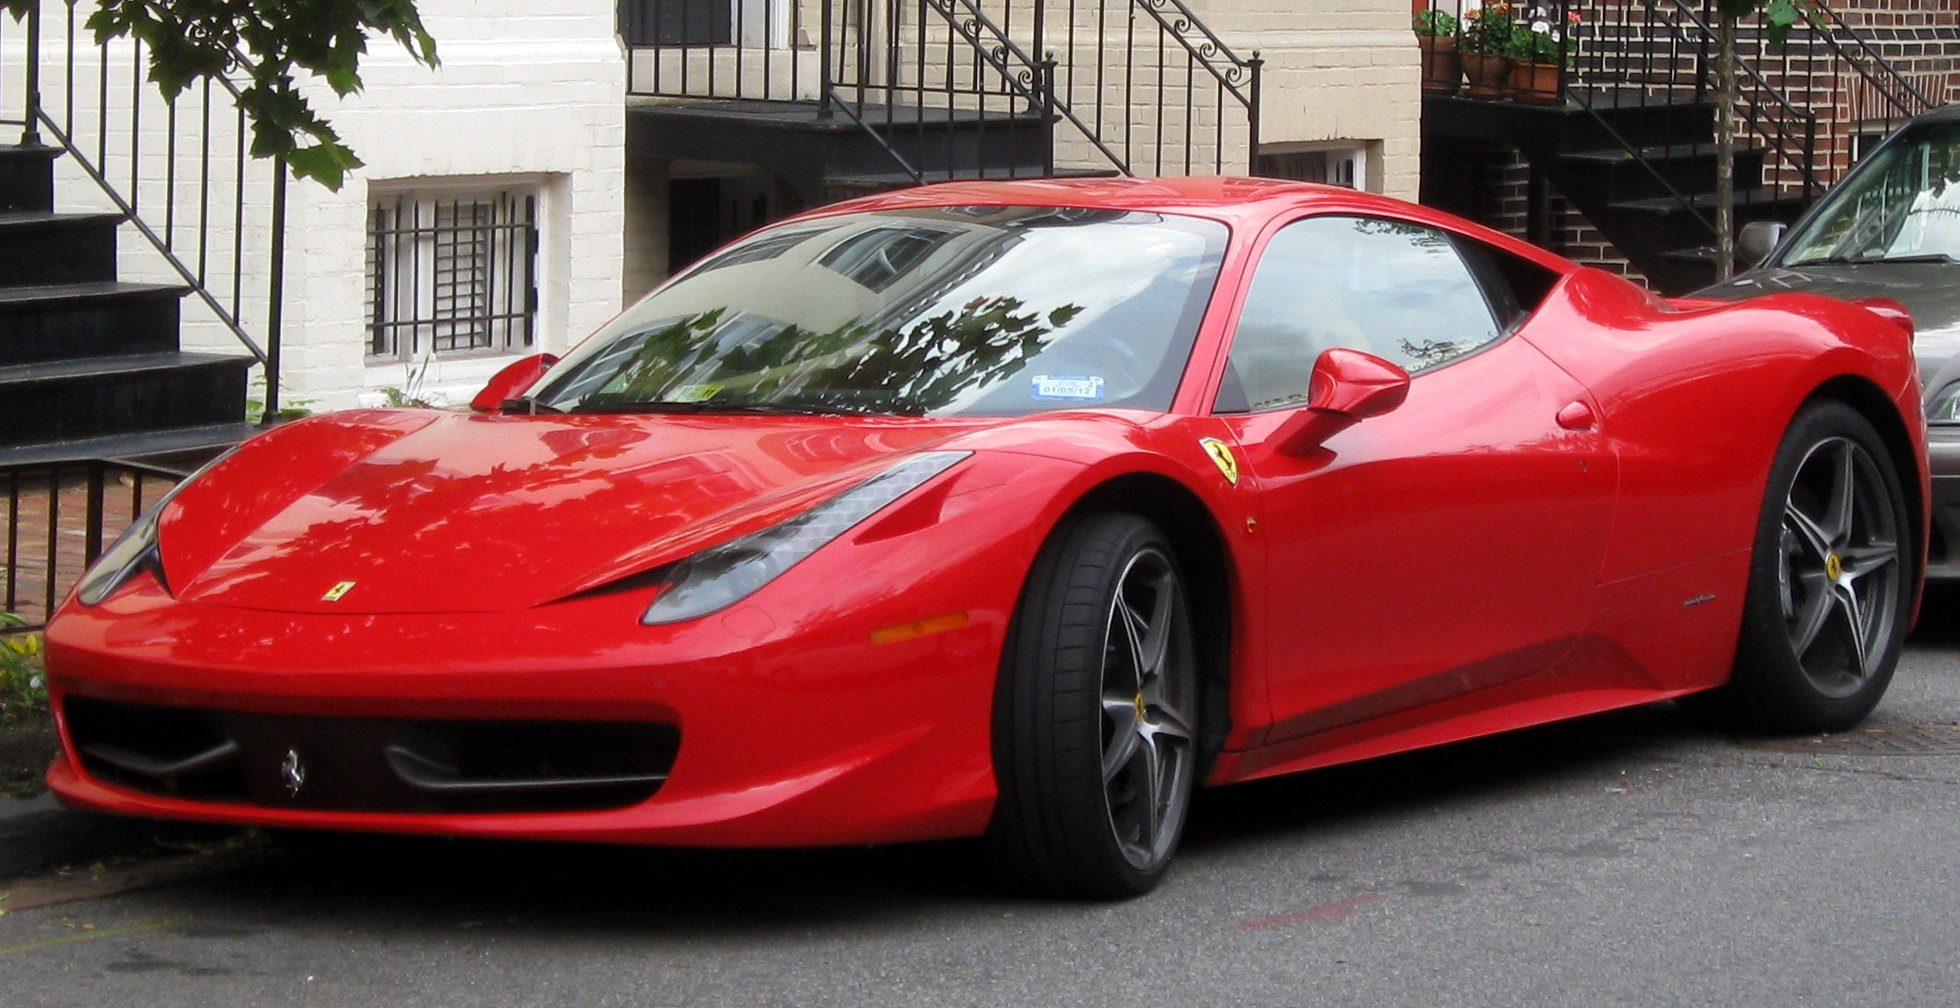 file ferrari 458 italia 05 18 wikipedia. Black Bedroom Furniture Sets. Home Design Ideas